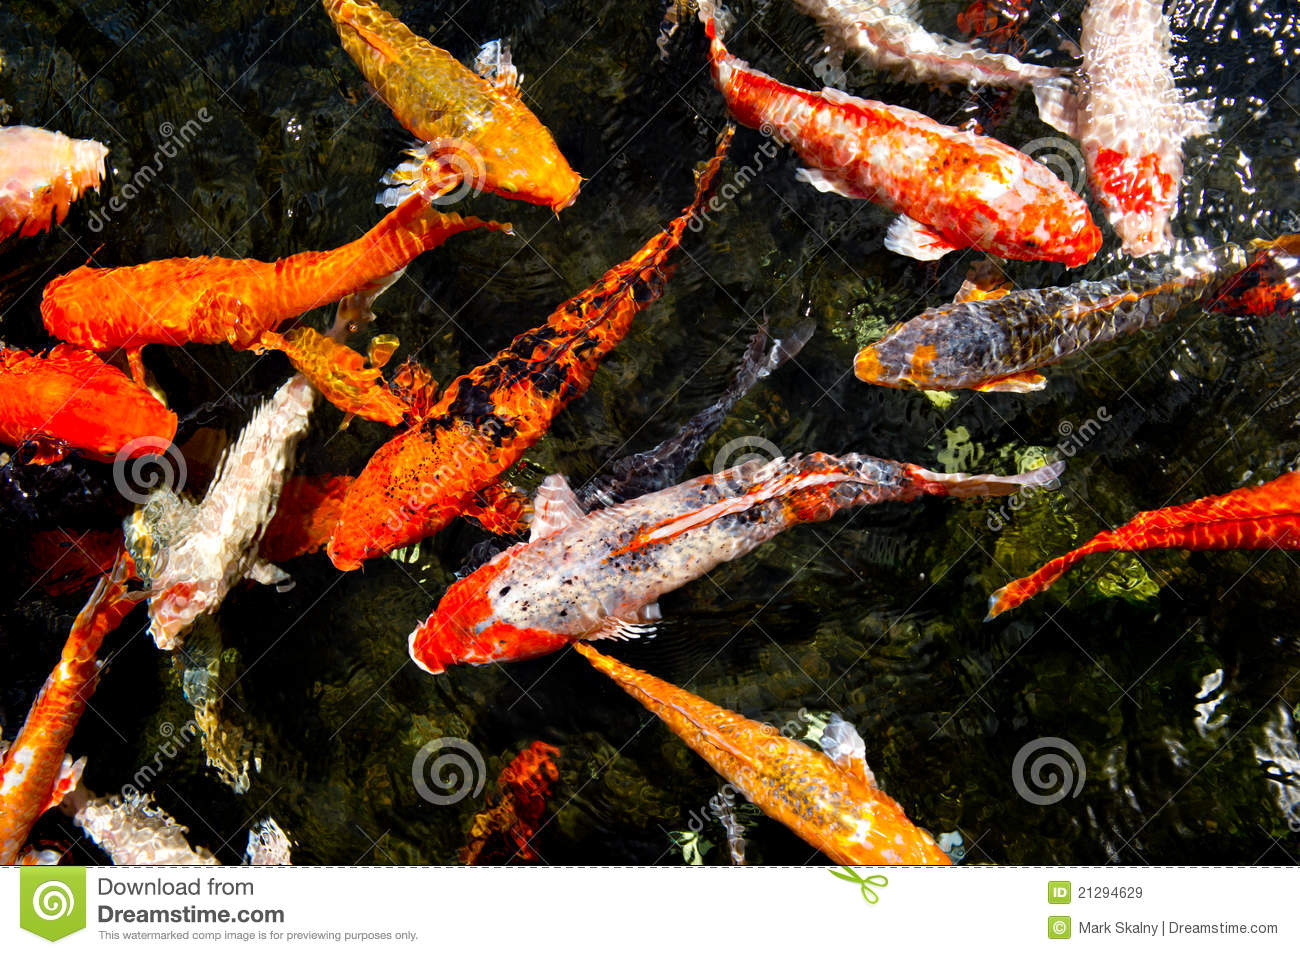 Colorful koi fish in a pond stock image image 21294629 for Koi fish in pool